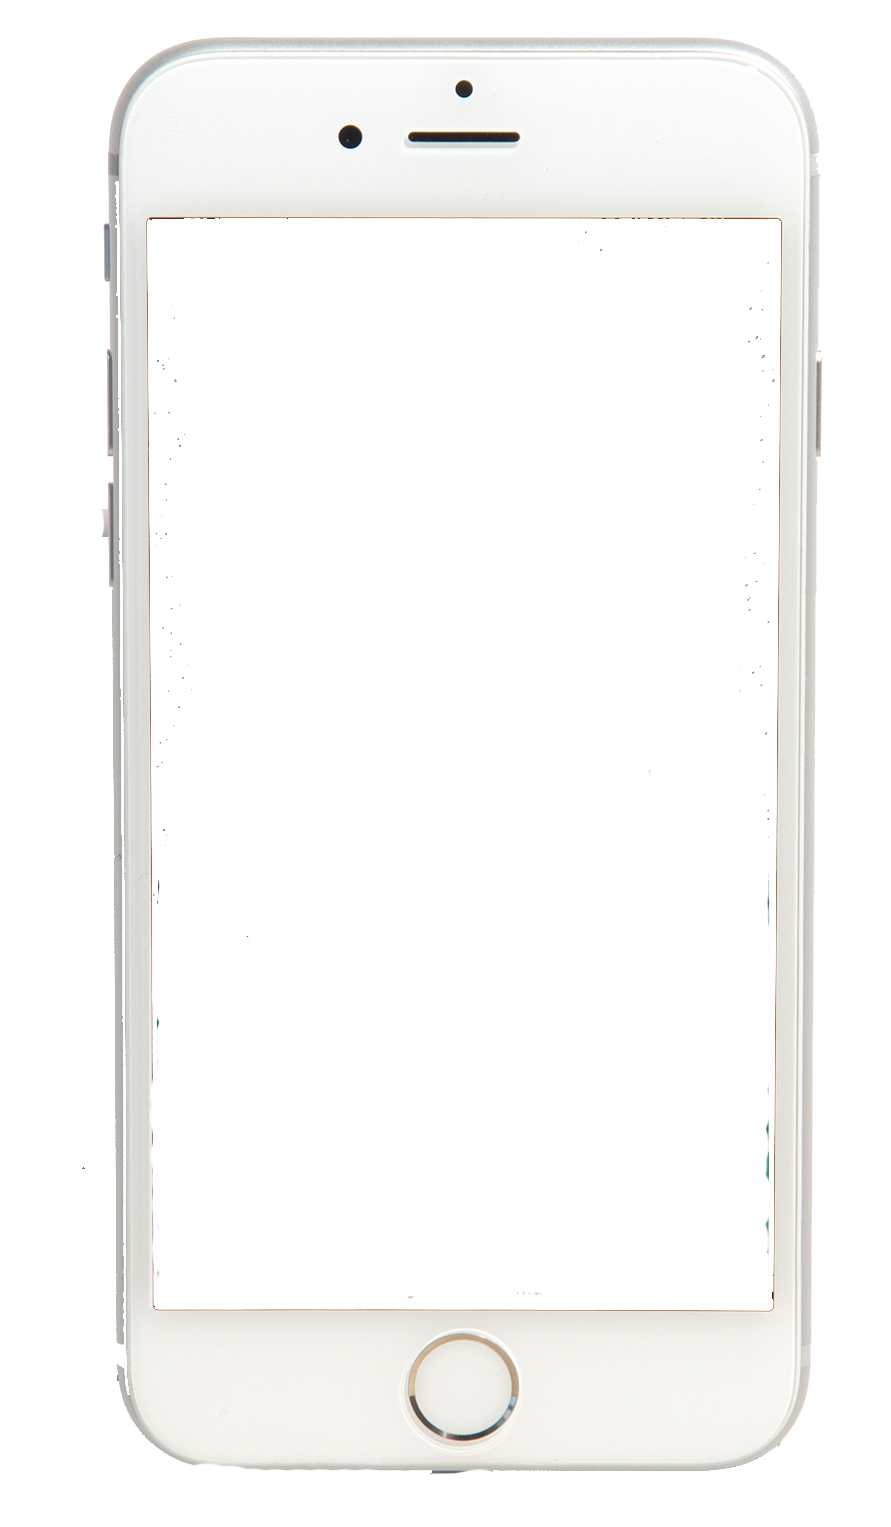 Iphone 6 png by SelenaPurpleewDirect on DeviantArt